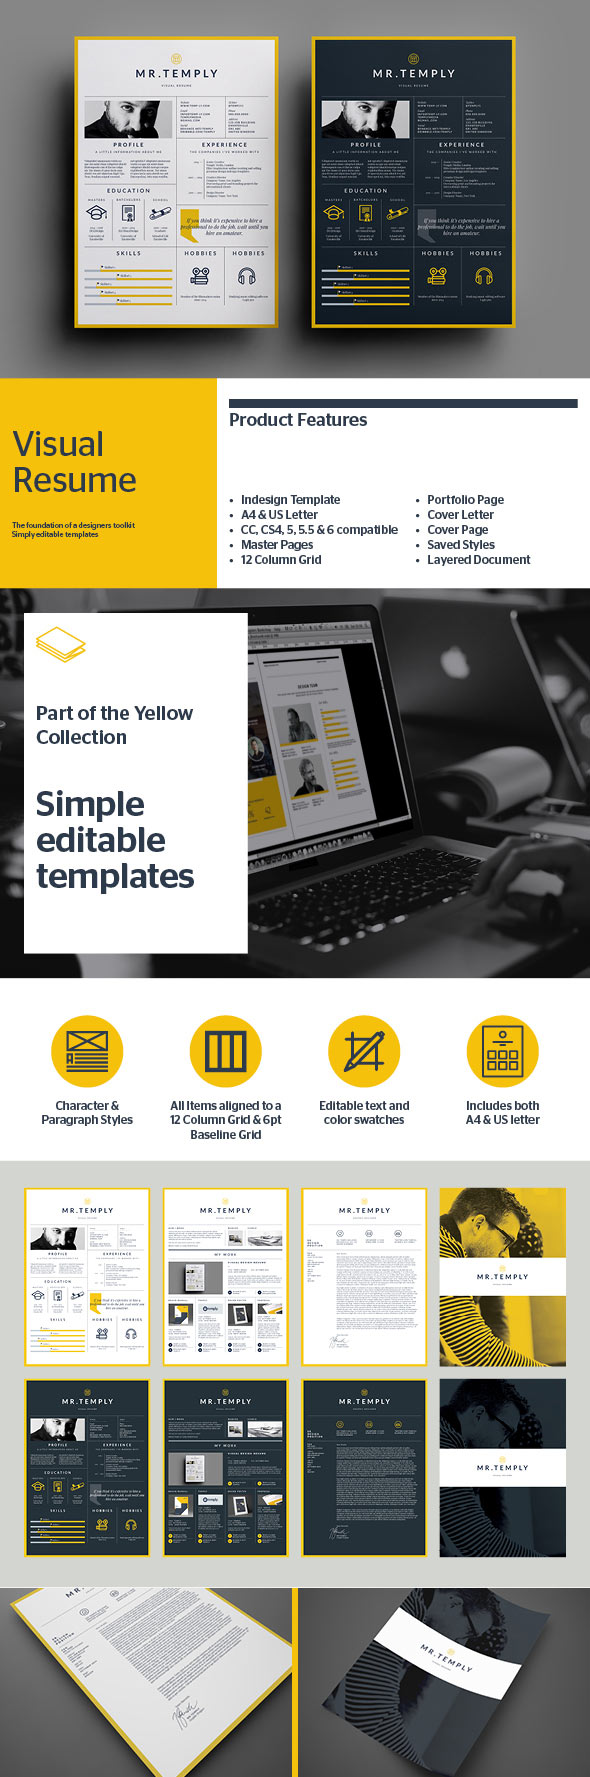 25 creative resume templates to land a new job in style visual creative resume template yelopaper Images